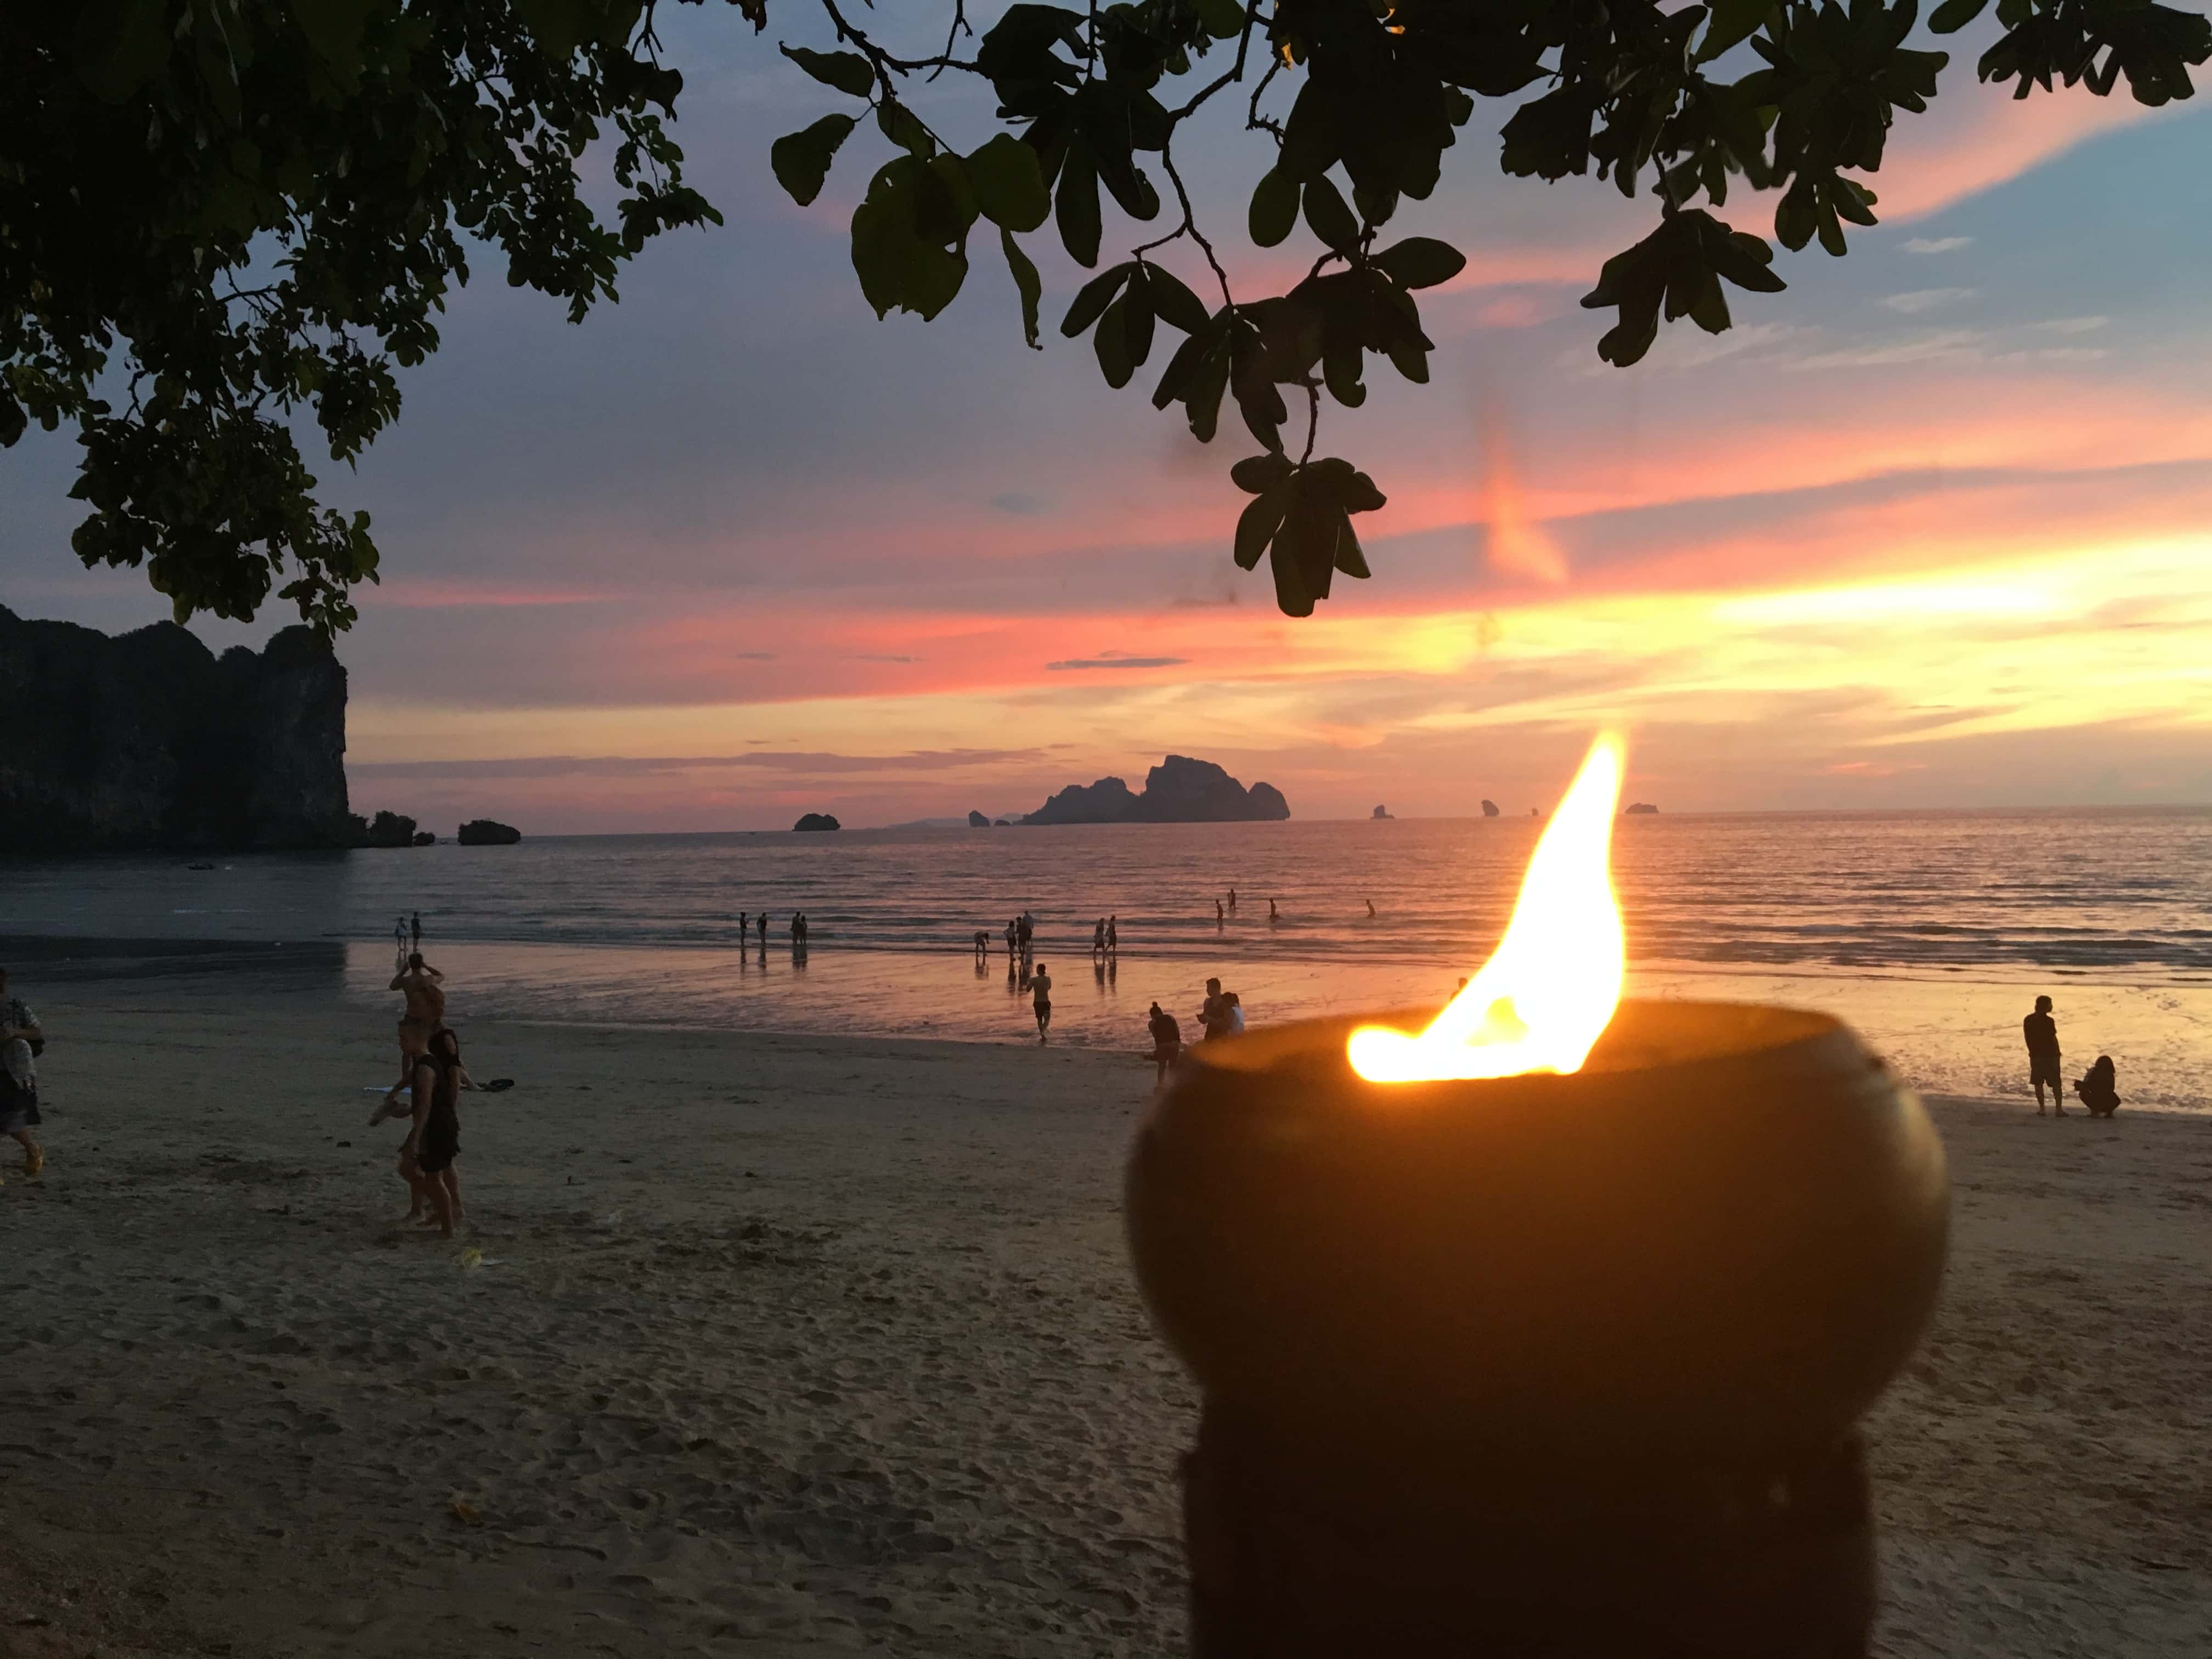 More sunsets at Thailand Beaches.